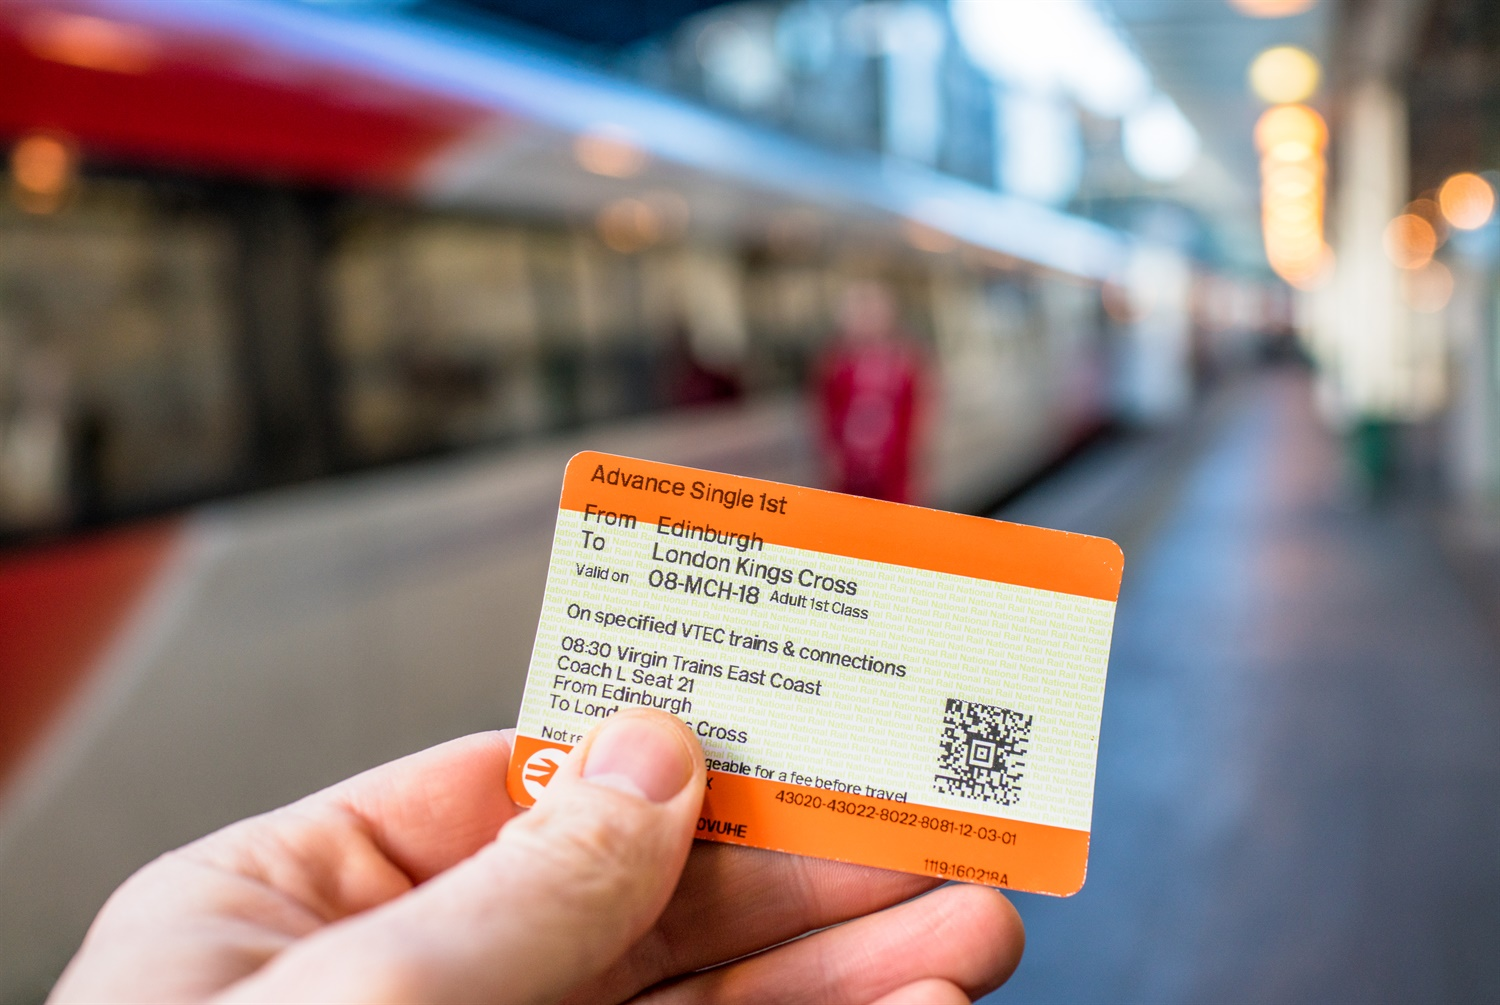 Rail fares must be simplified if HS2 is to 'raise the bar' as promised